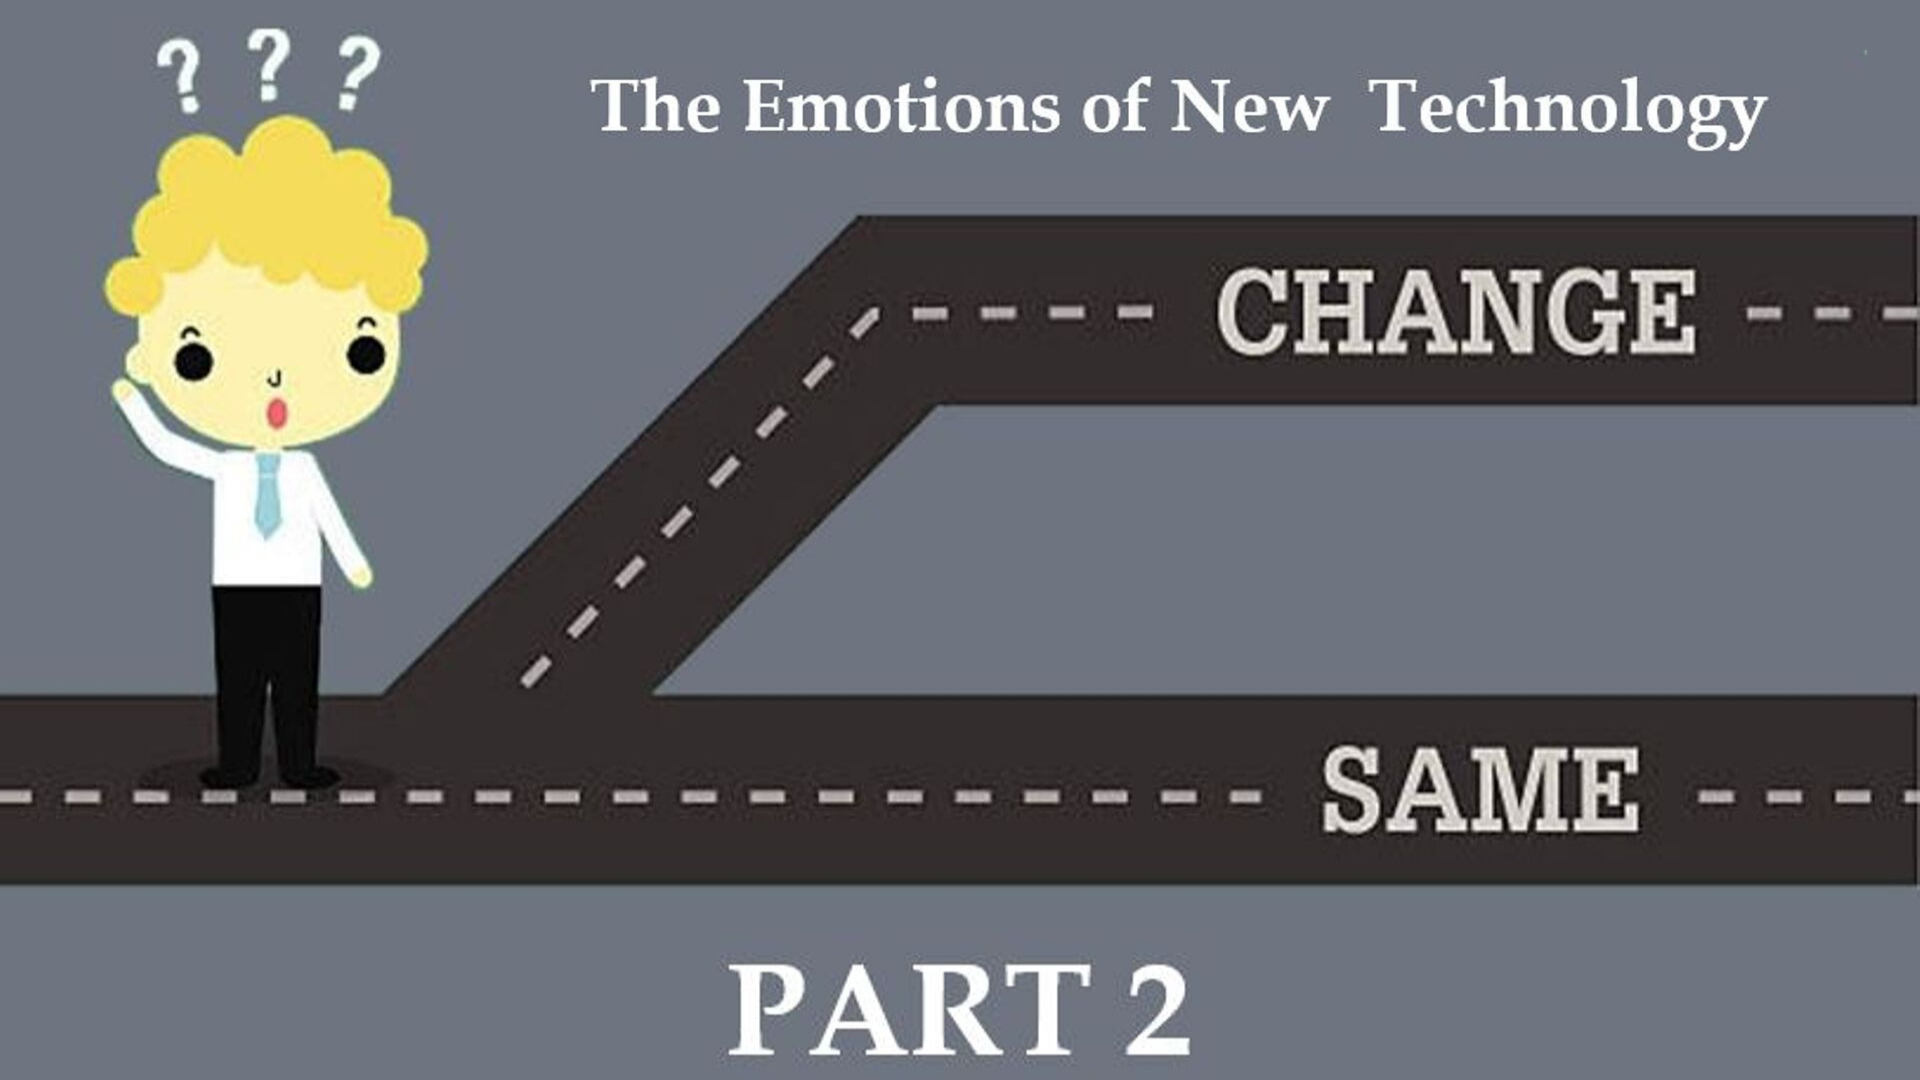 The Fear of Change, Part 2:  The Emotions of New Technology